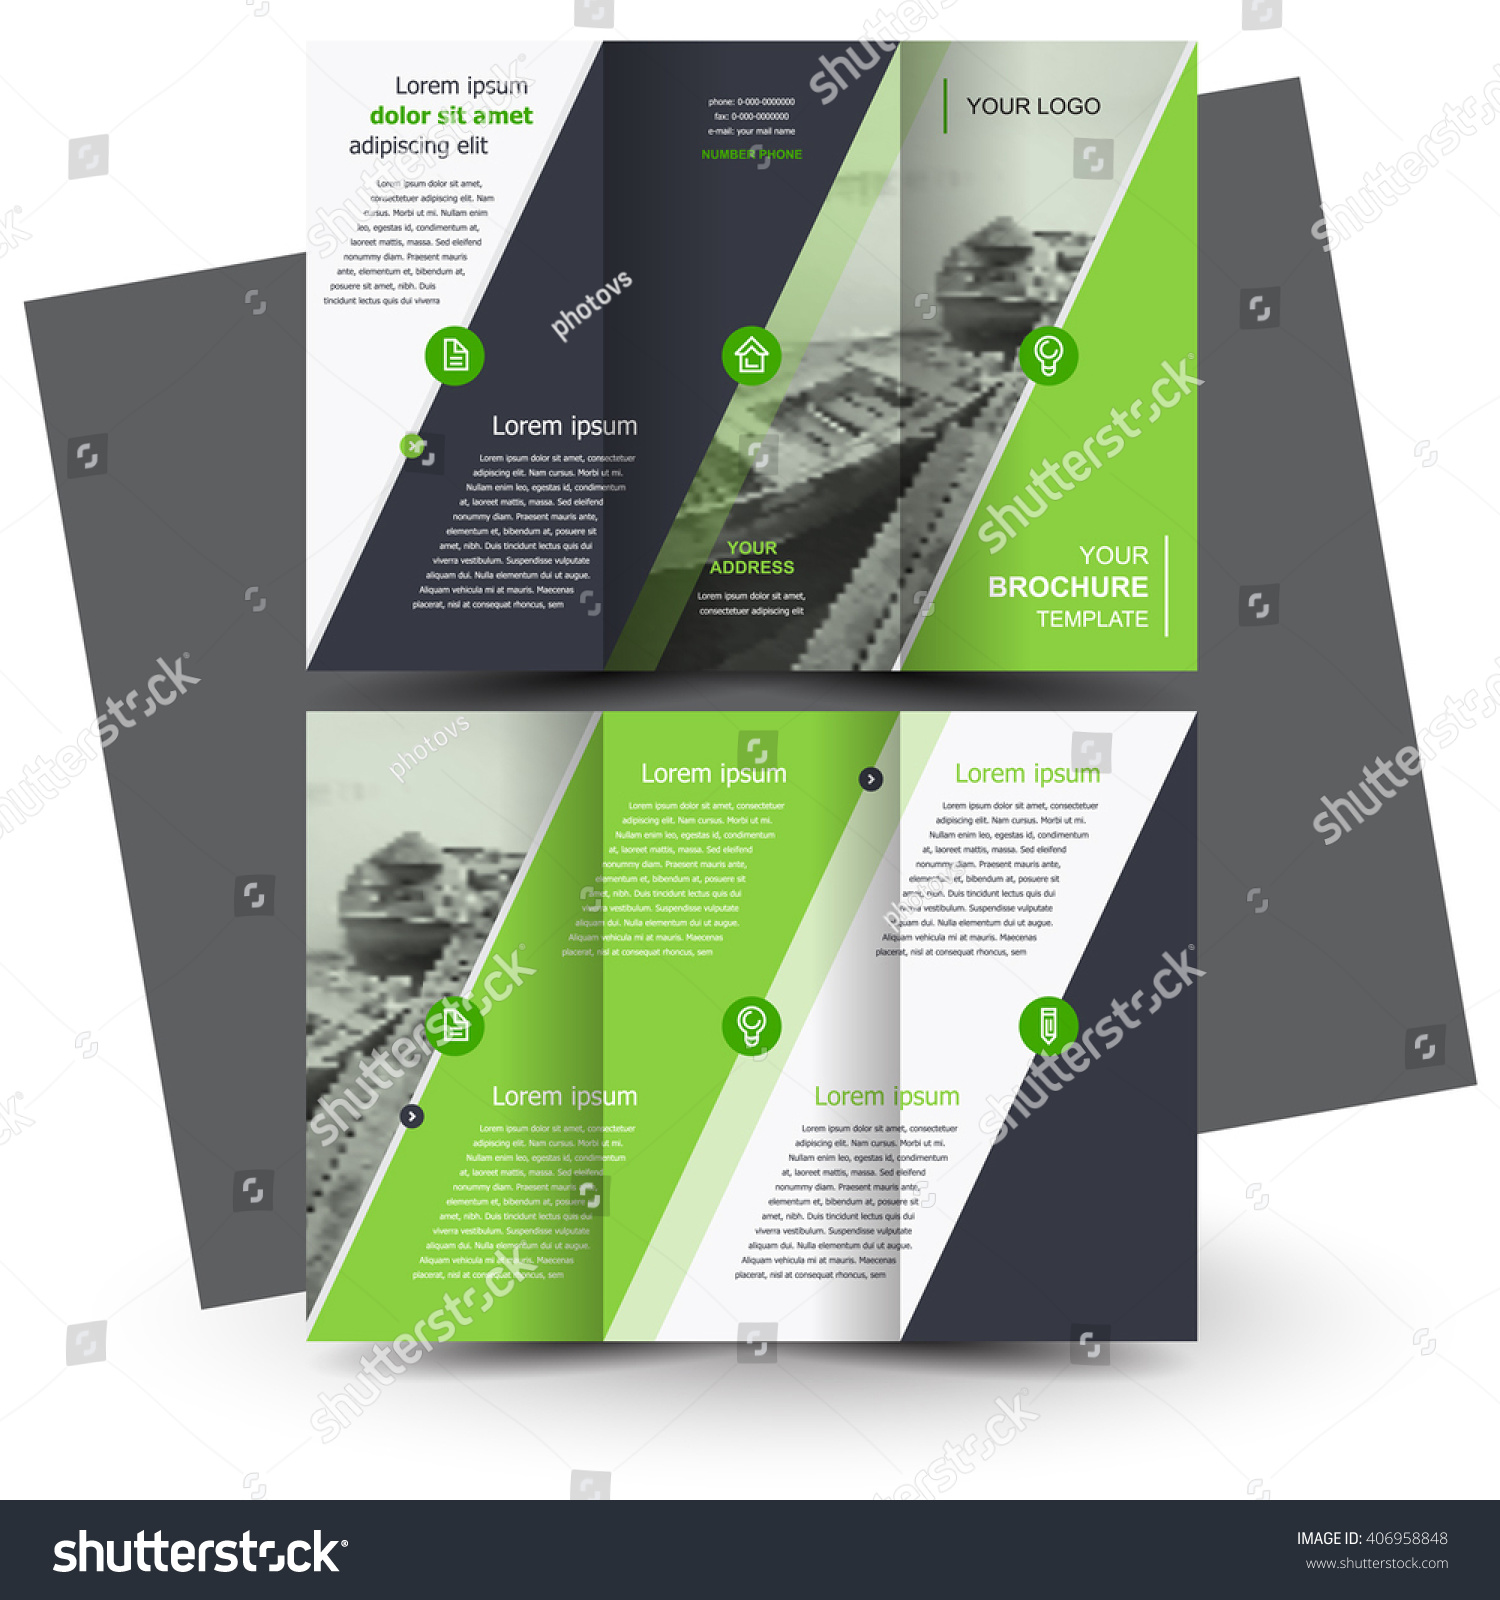 Brochure Design Business Brochure Template Creative Vector – Business Brochure Design